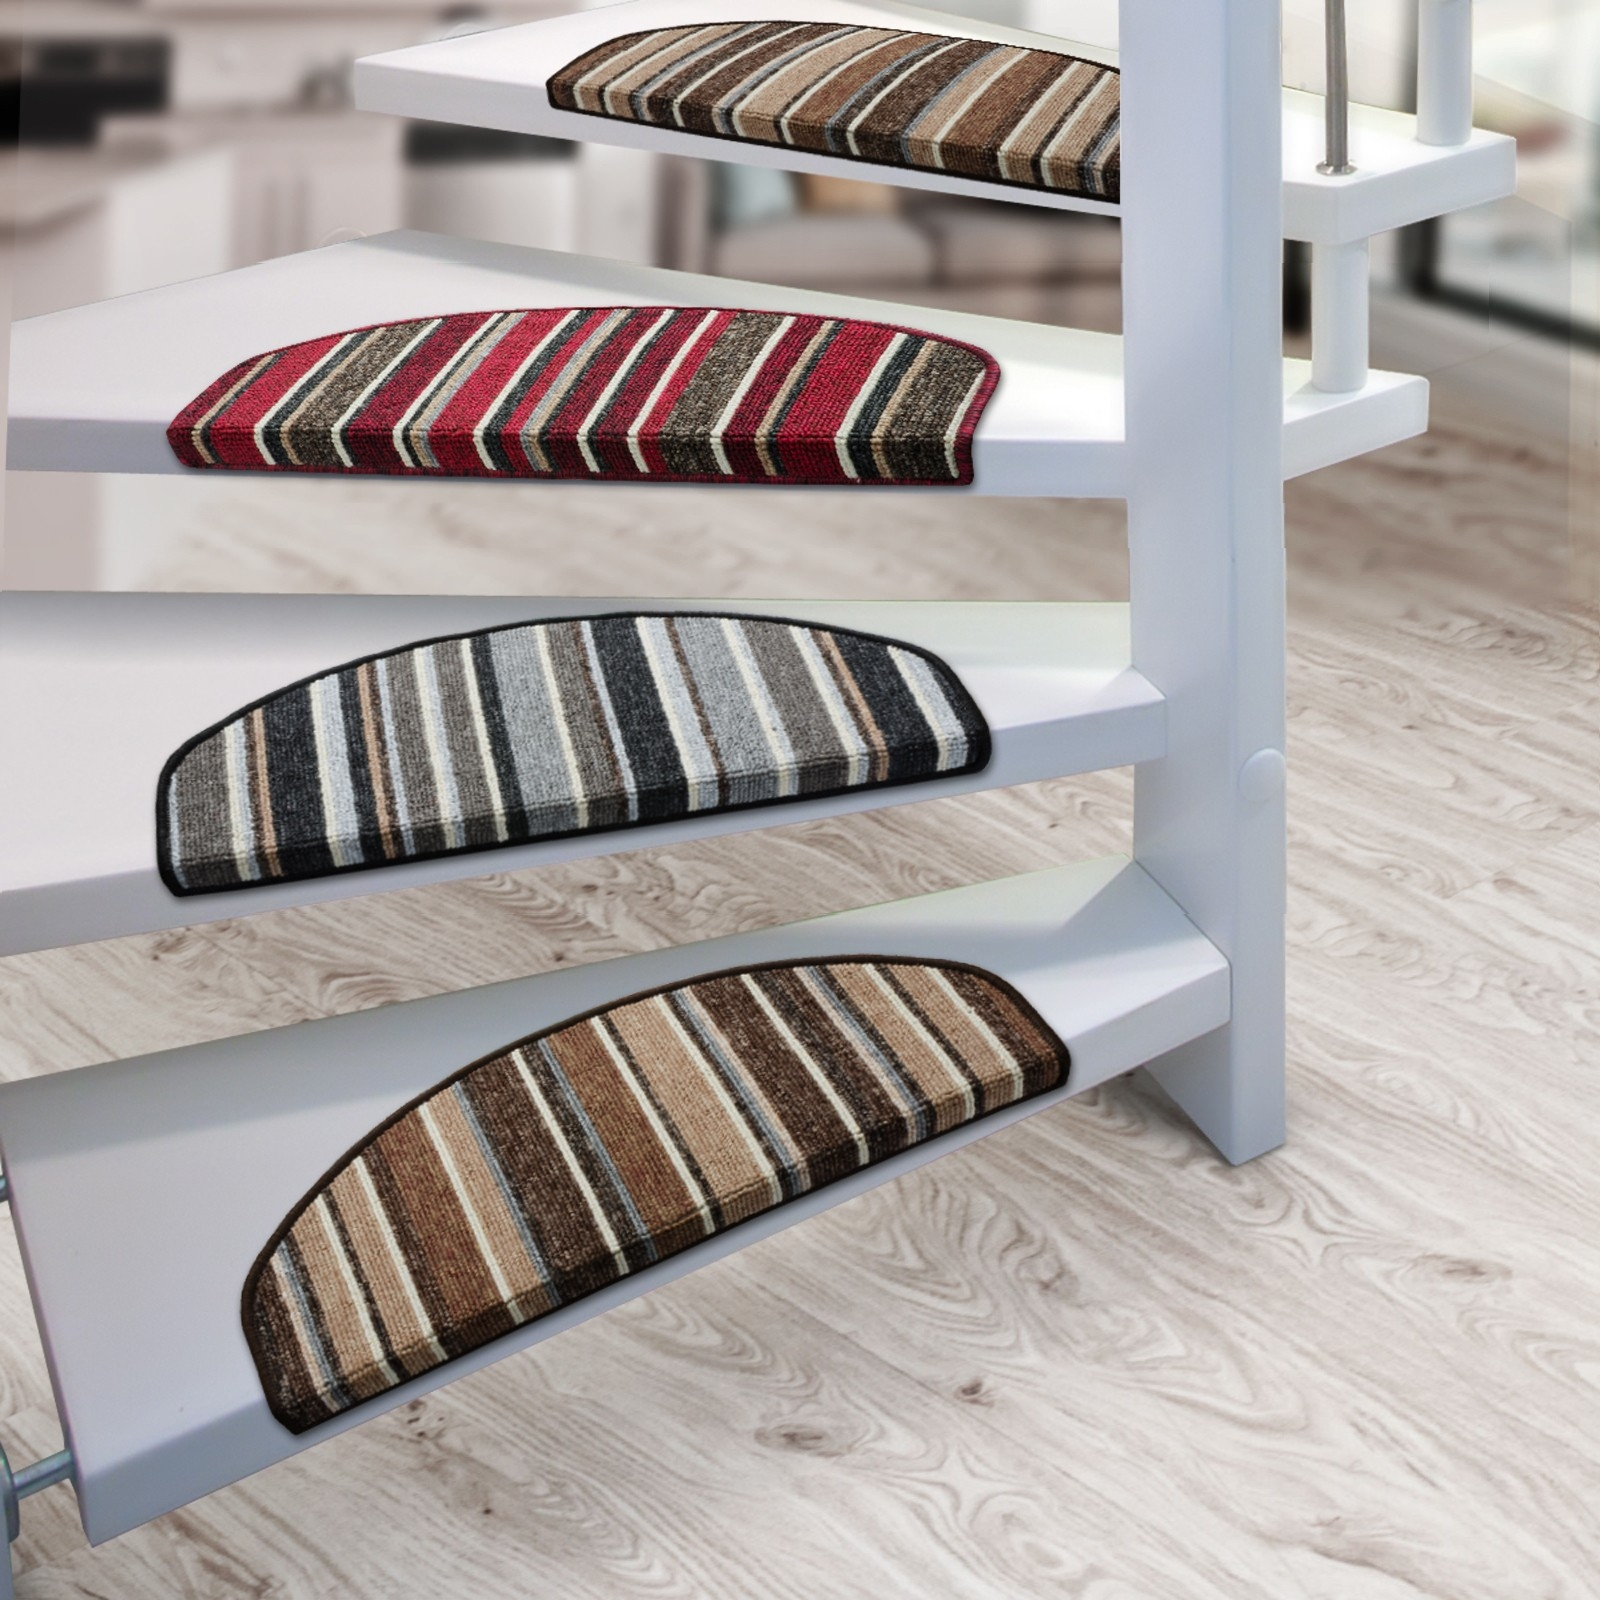 Stair Mats Broadway Semicircular 3 Colours Available In Traction Pads For Stairs (Image 14 of 15)